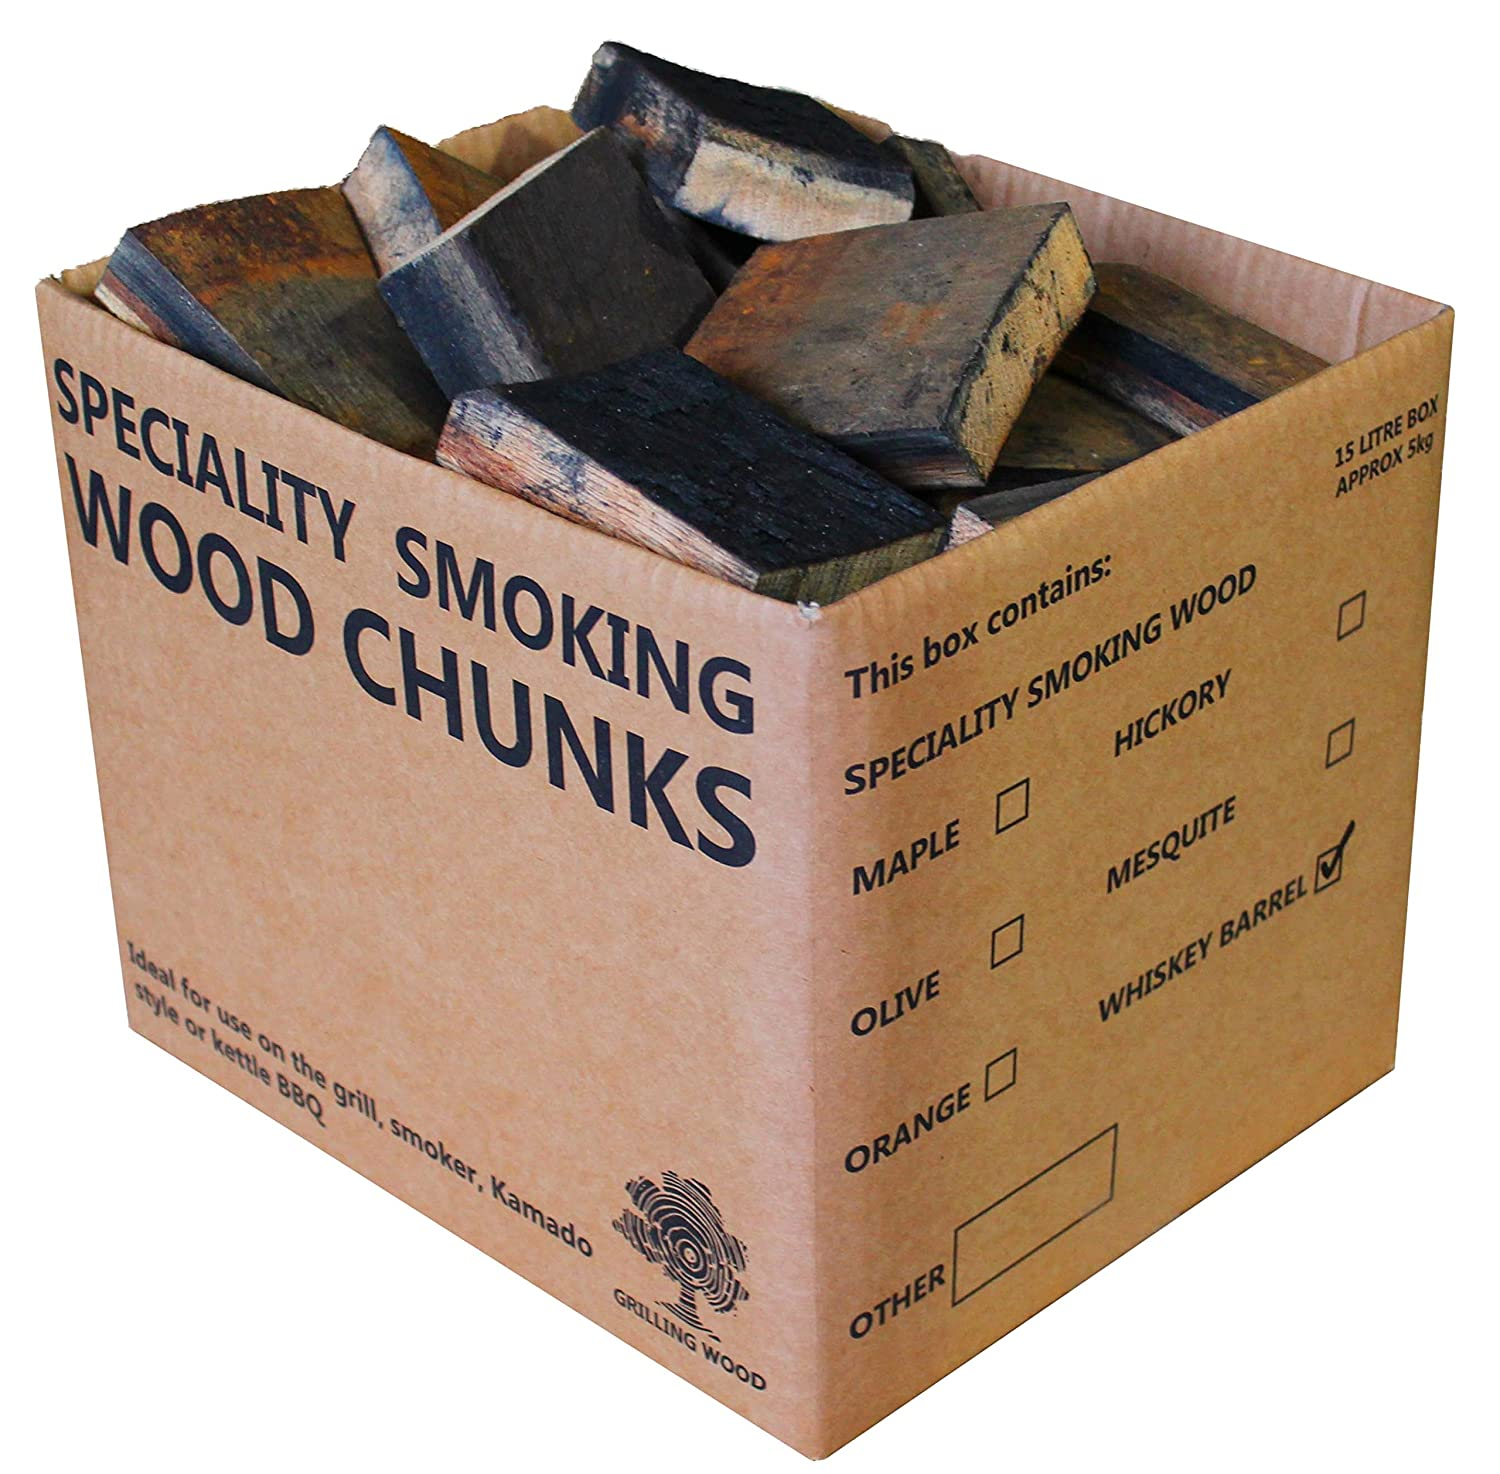 Barbecue tonneau de chêne Whisky Chunks – 5 kg Grilling Wood